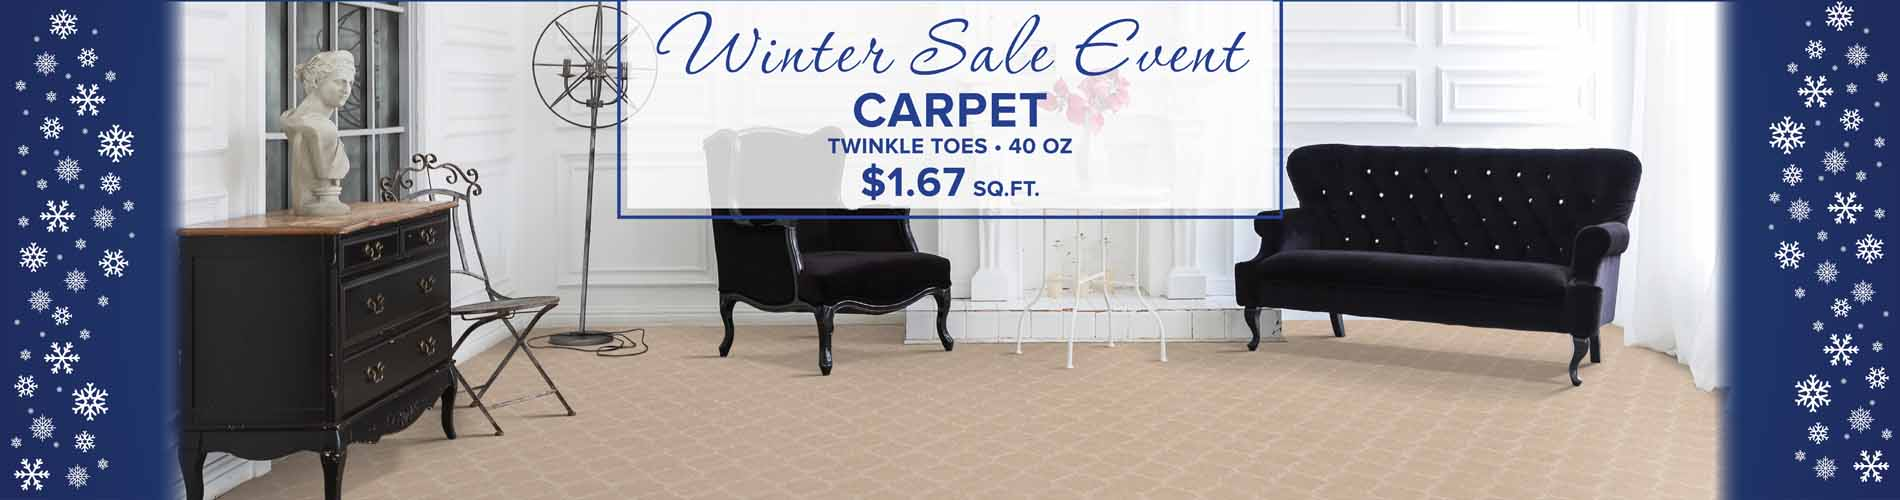 Twinkle Toes 40oz carpet on sale for just $1.67 sq.ft.